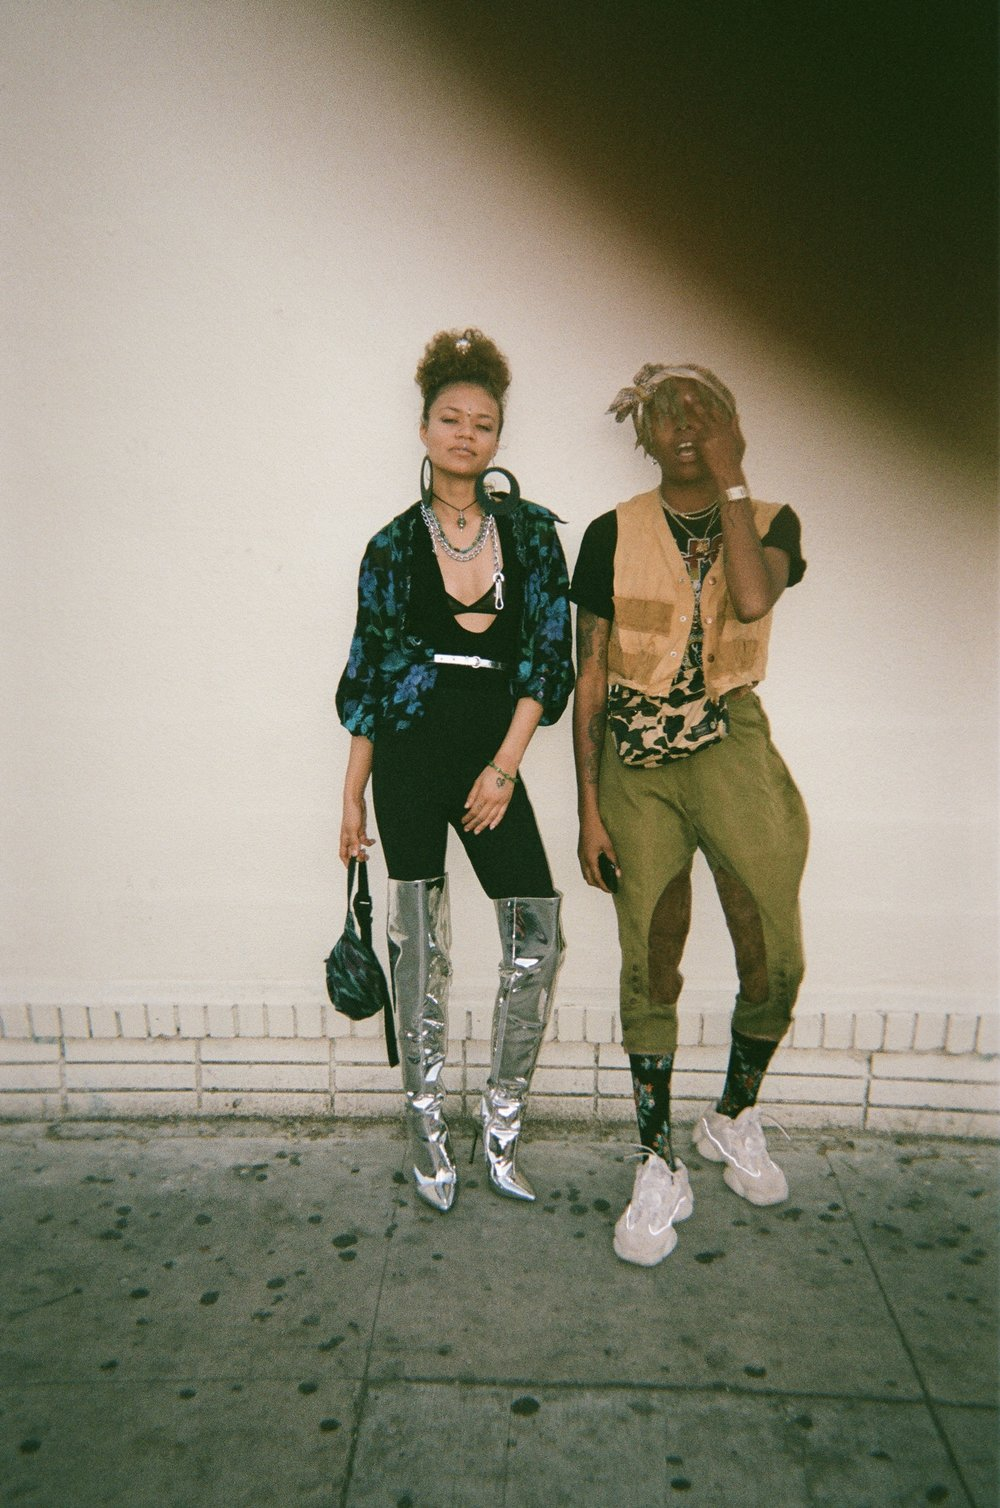 May 2018 // Los Angeles, California  - Iyana and Sol'le being their swaggy selves. We were all headed to see Brent's work at an Art Show, It was such a good installation. Wish this photo came out better but whatever.. just look at their fitz, FLAME.